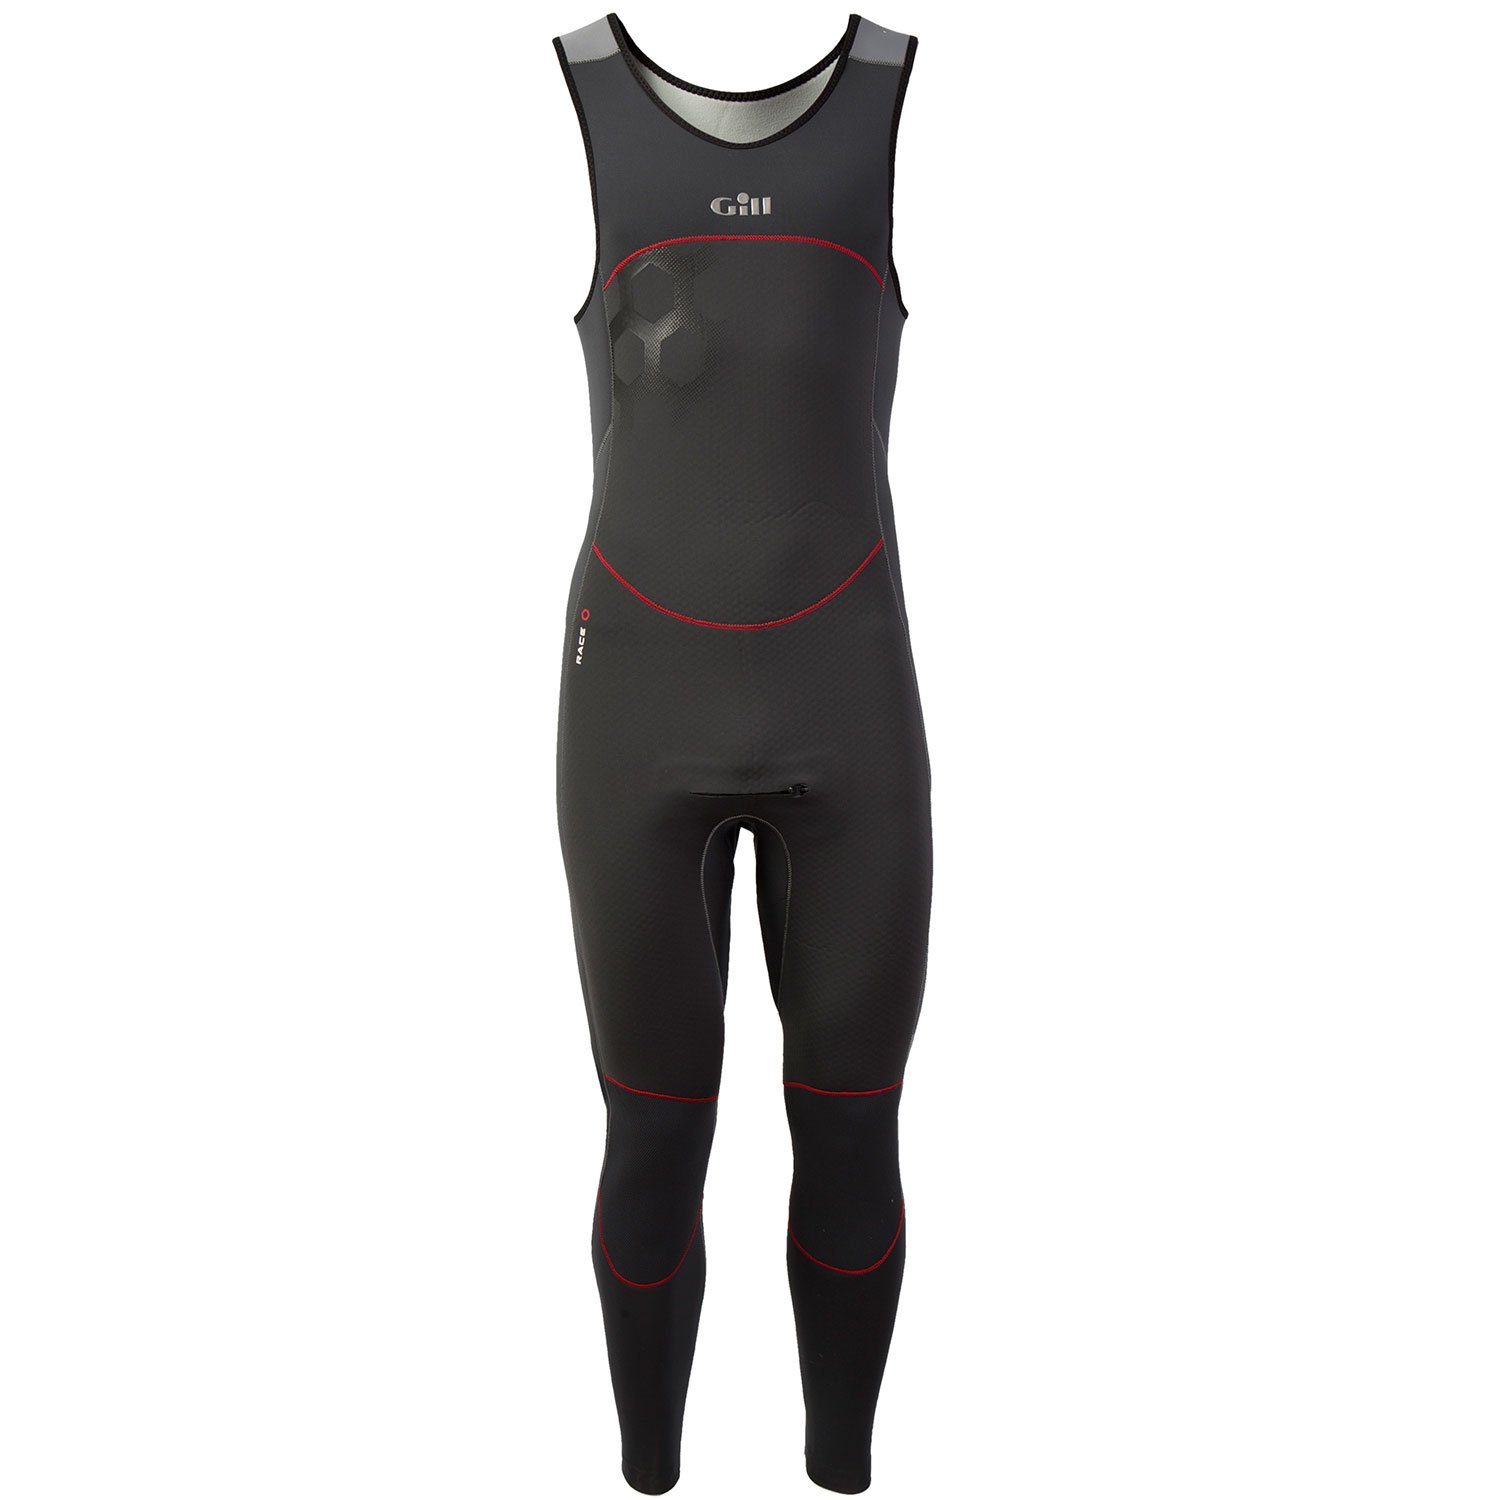 Gill Race Firecell Wetsuit Skiff Suit - Graphite XS by Gill